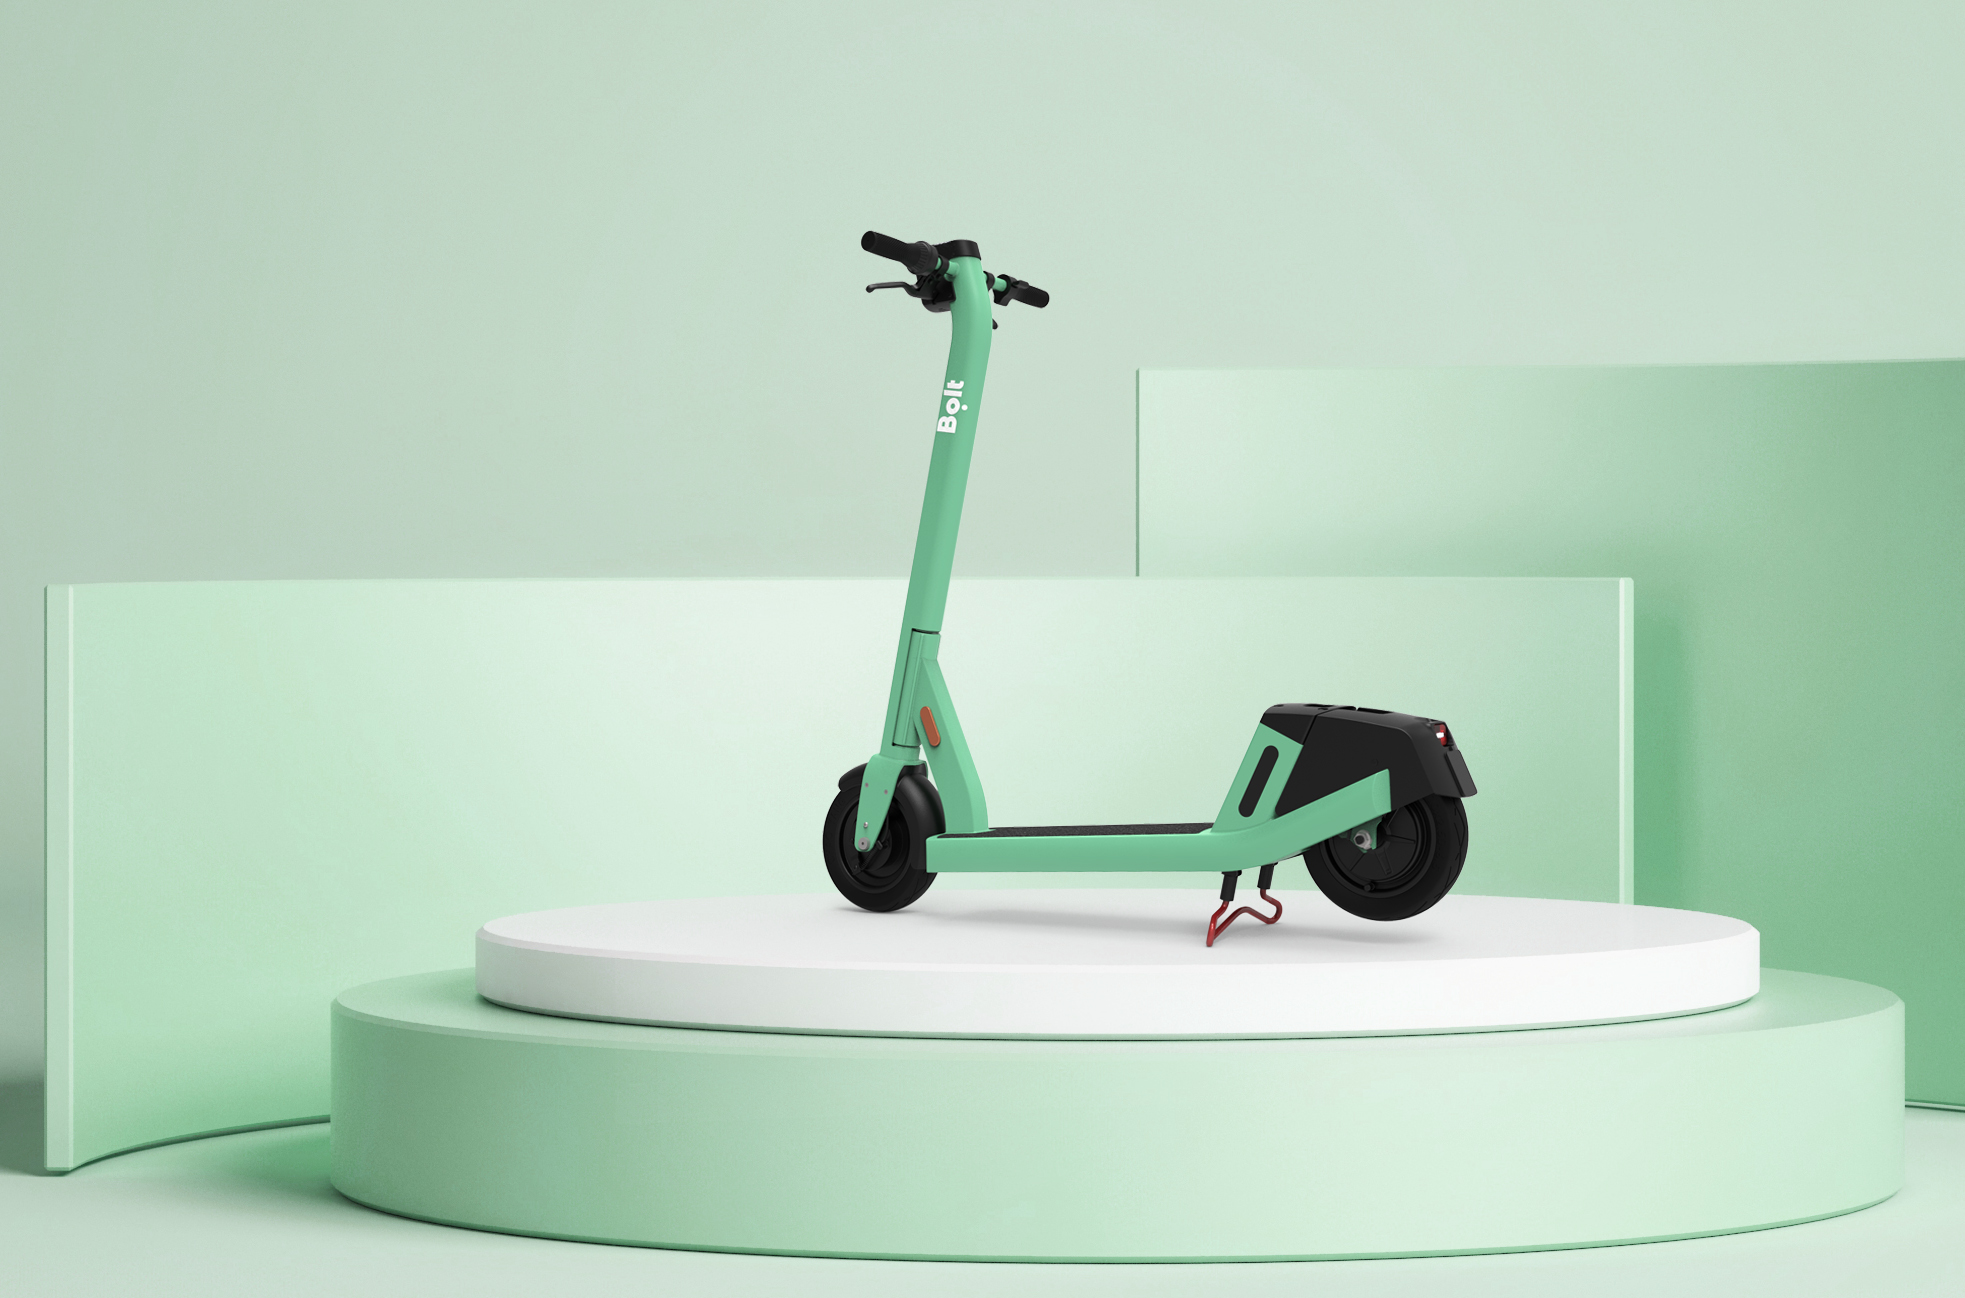 Bolt unveils its fourth-generation scooter